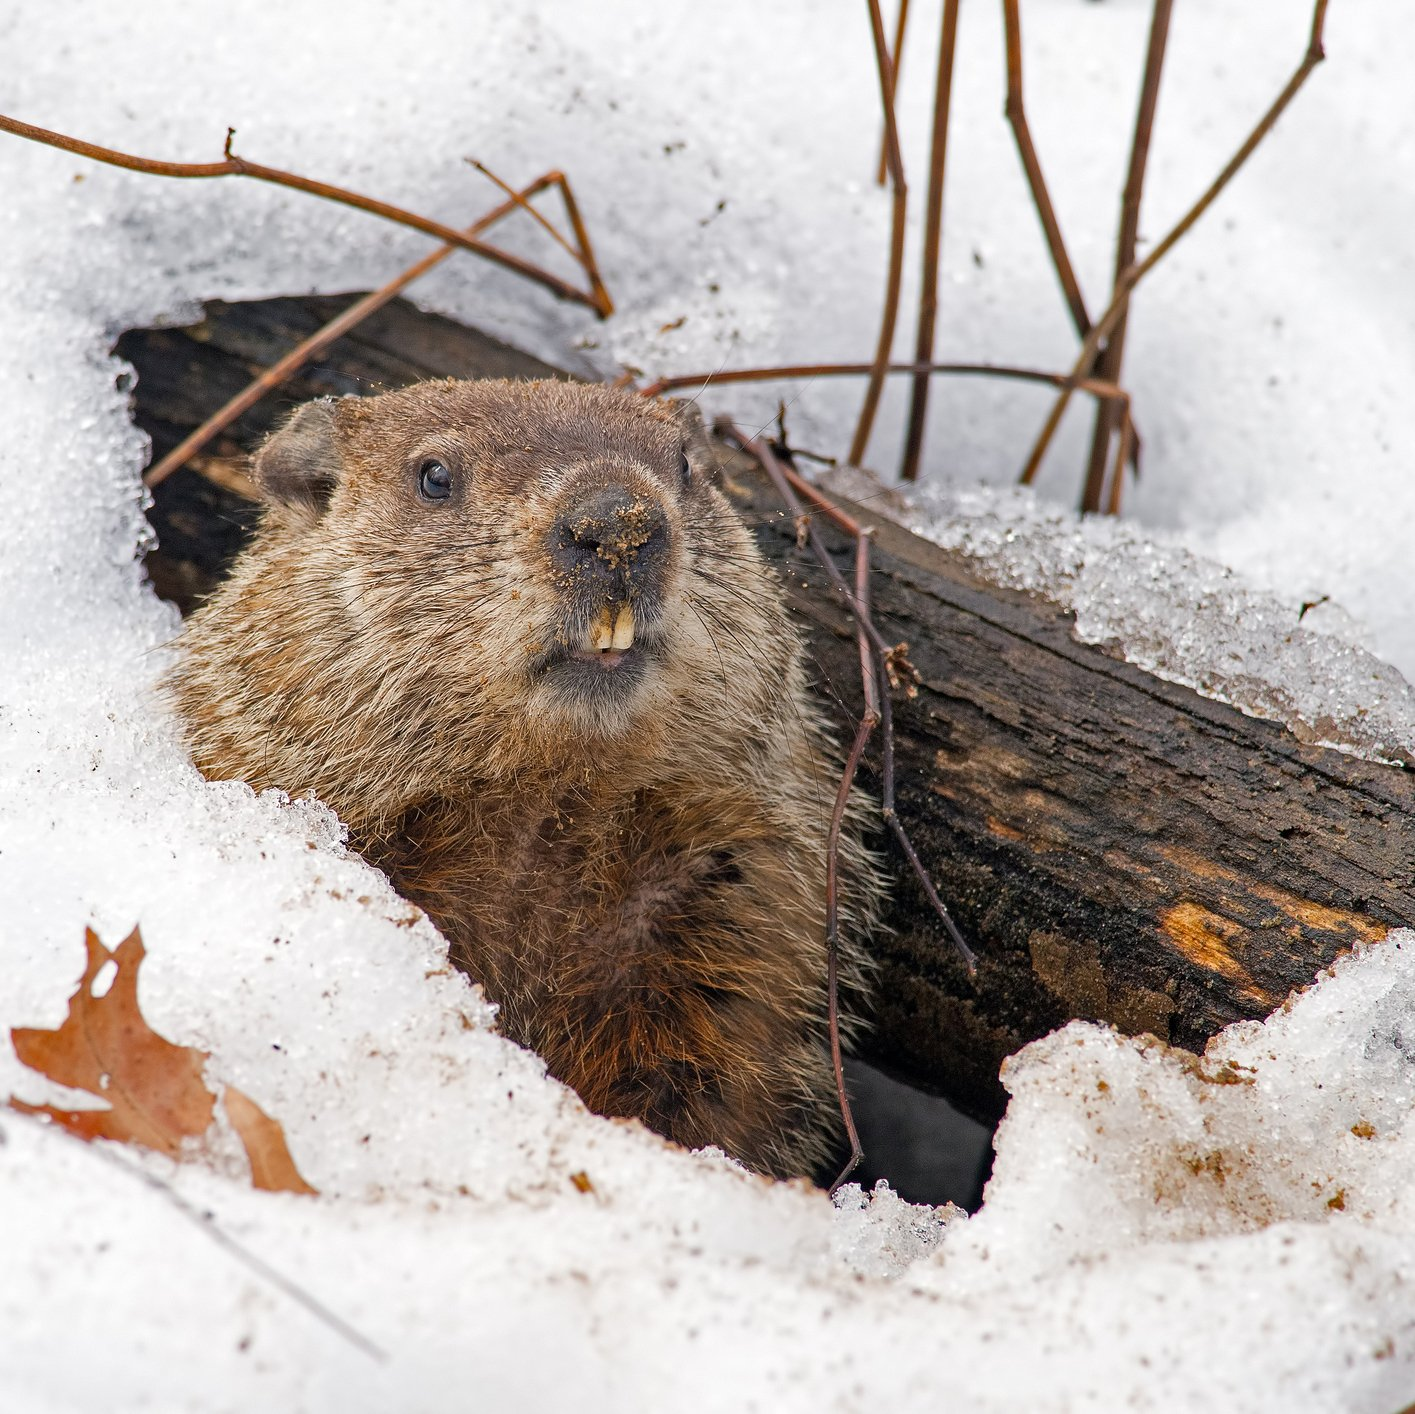 Tomorrow is Groundhog Day — what prediction are you hoping for? https://t.co/Iaaf4zpBui